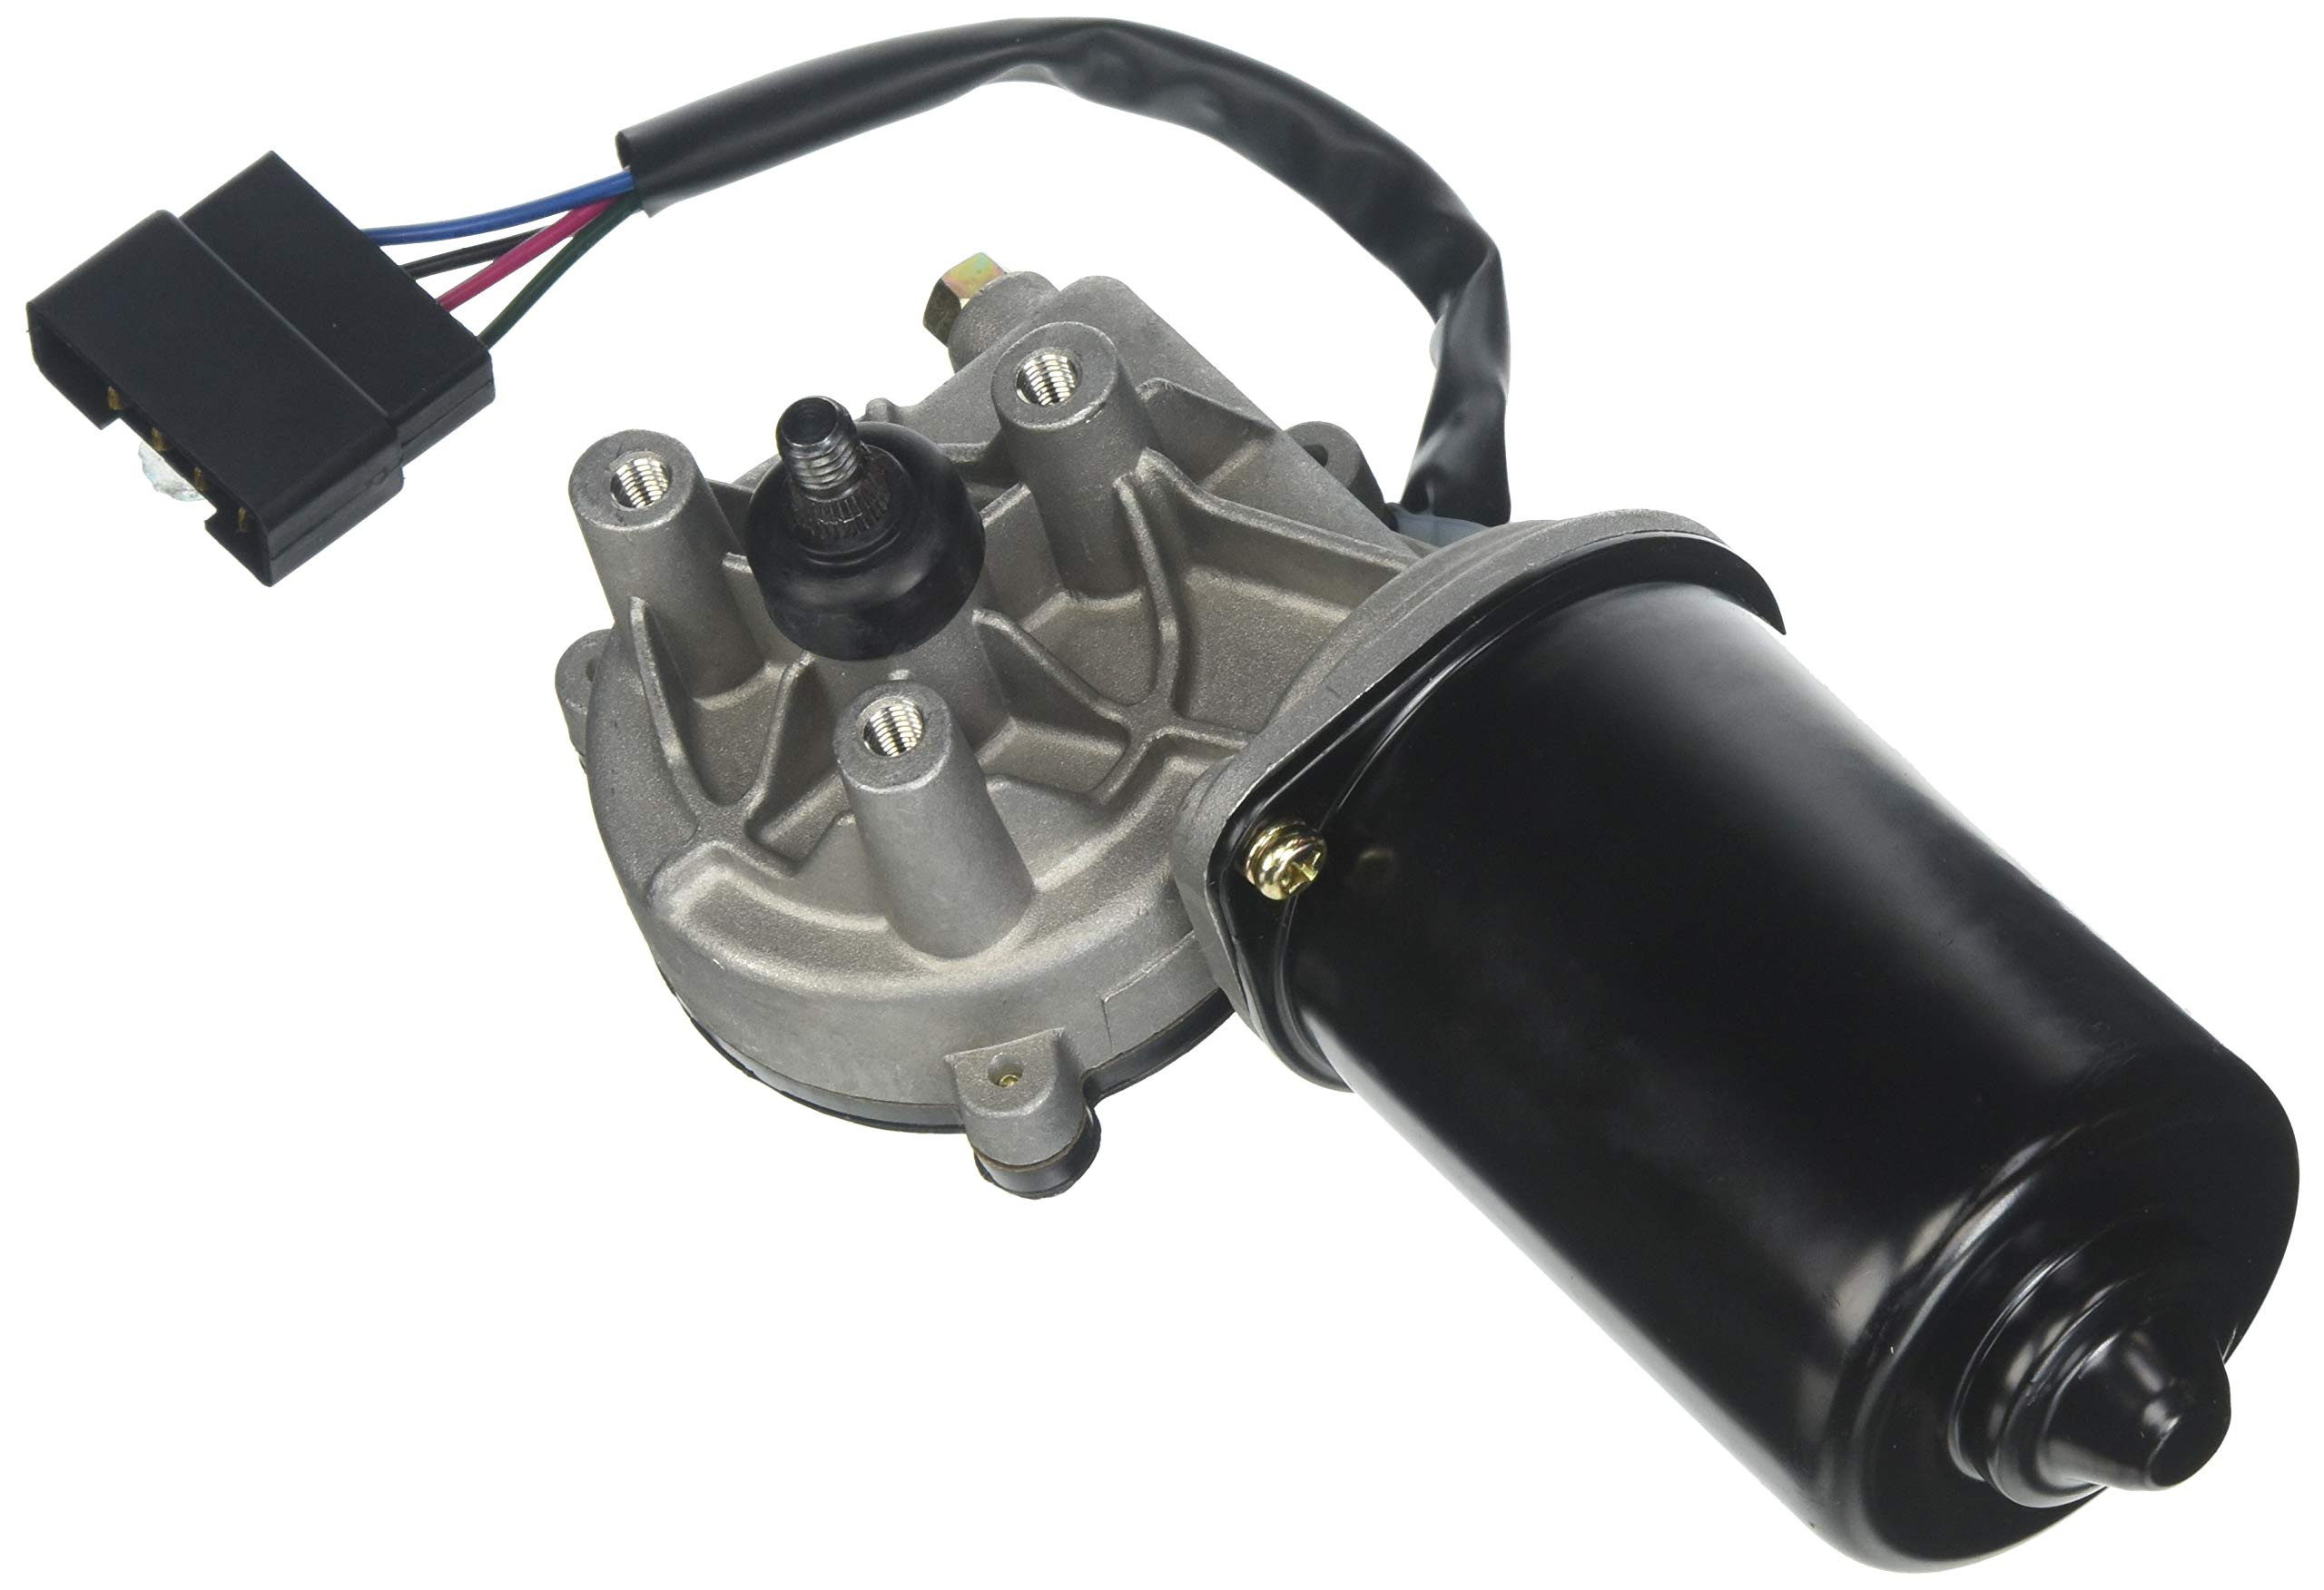 Wexco Wiper Motor, H130, 12V, 25Nm, Coast-to-Park Wiper Motor with SAE threads by AutoTex